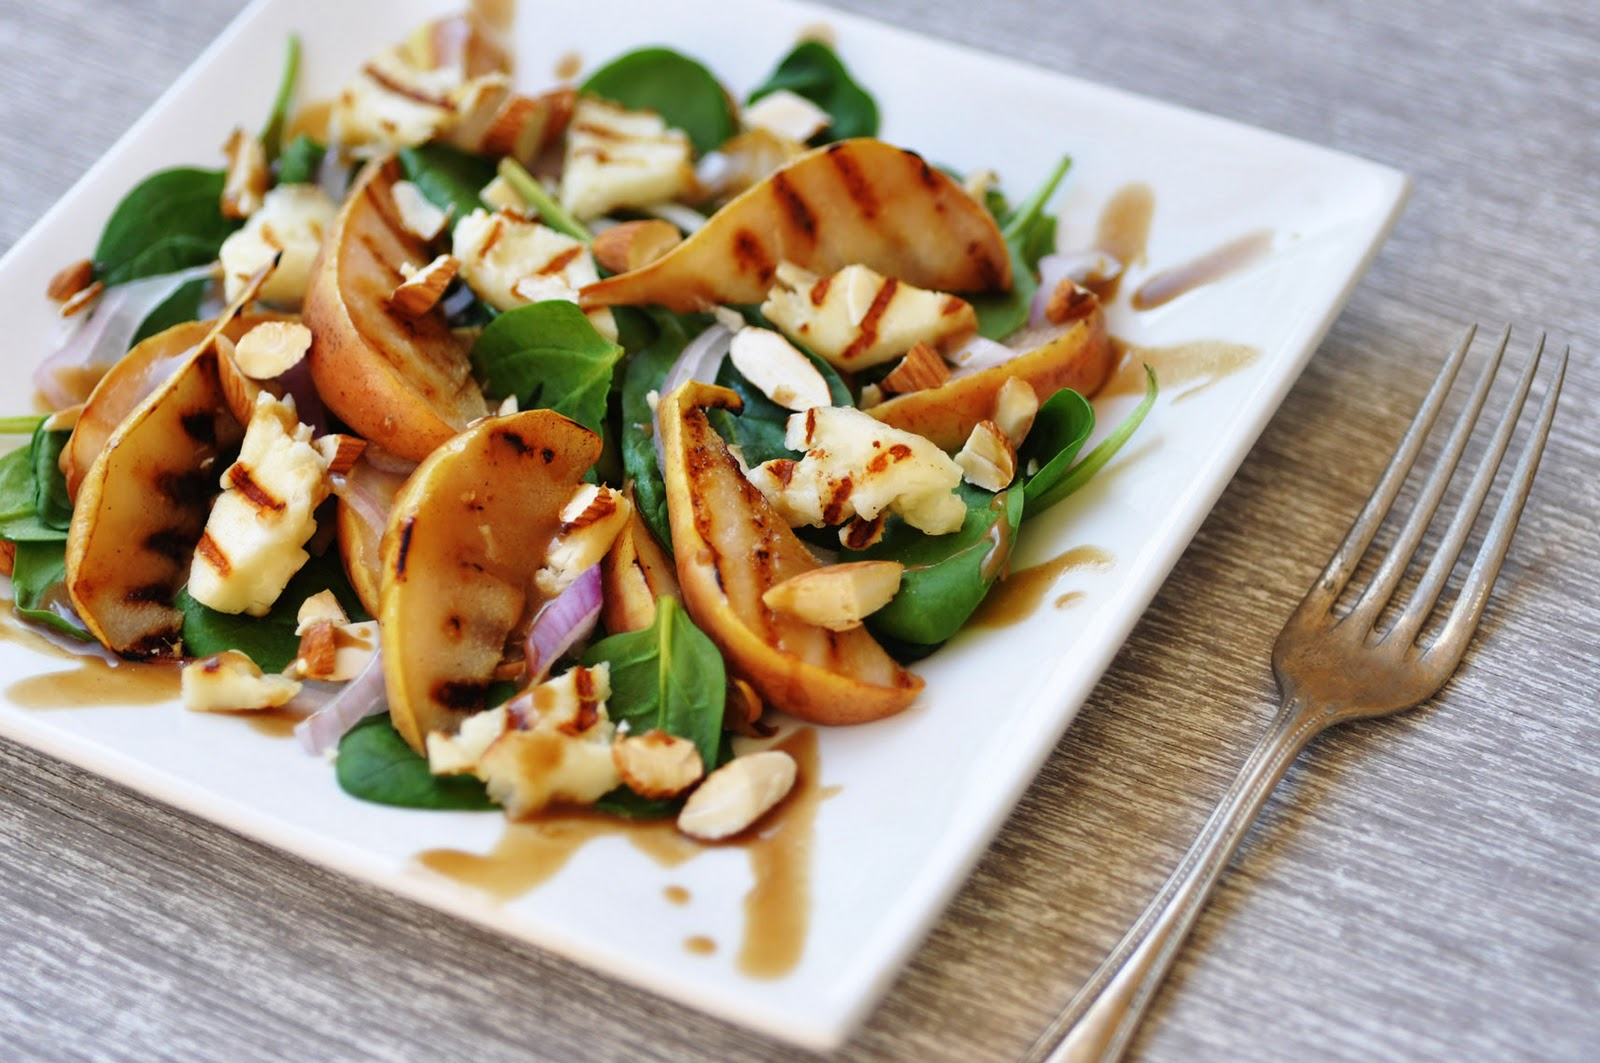 Anja's Food 4 Thought: Pear and Spinach Salad with Halloumi